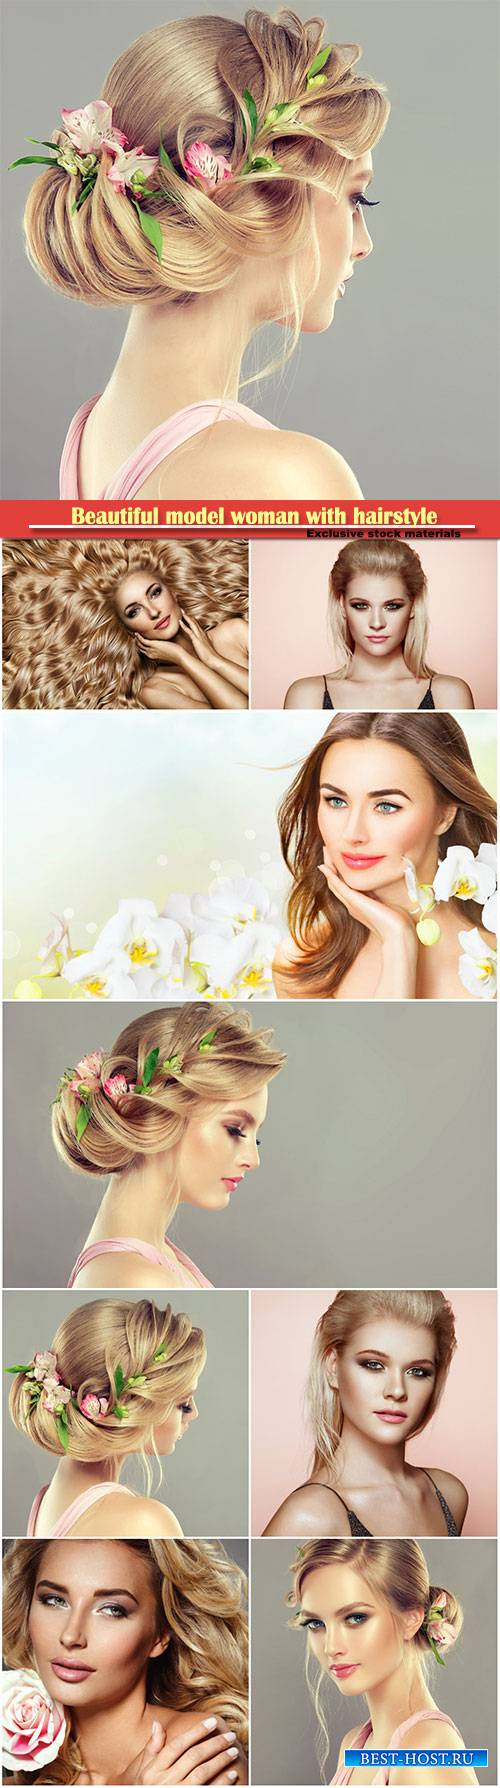 Beautiful model woman with hairstyle and perfect make-up